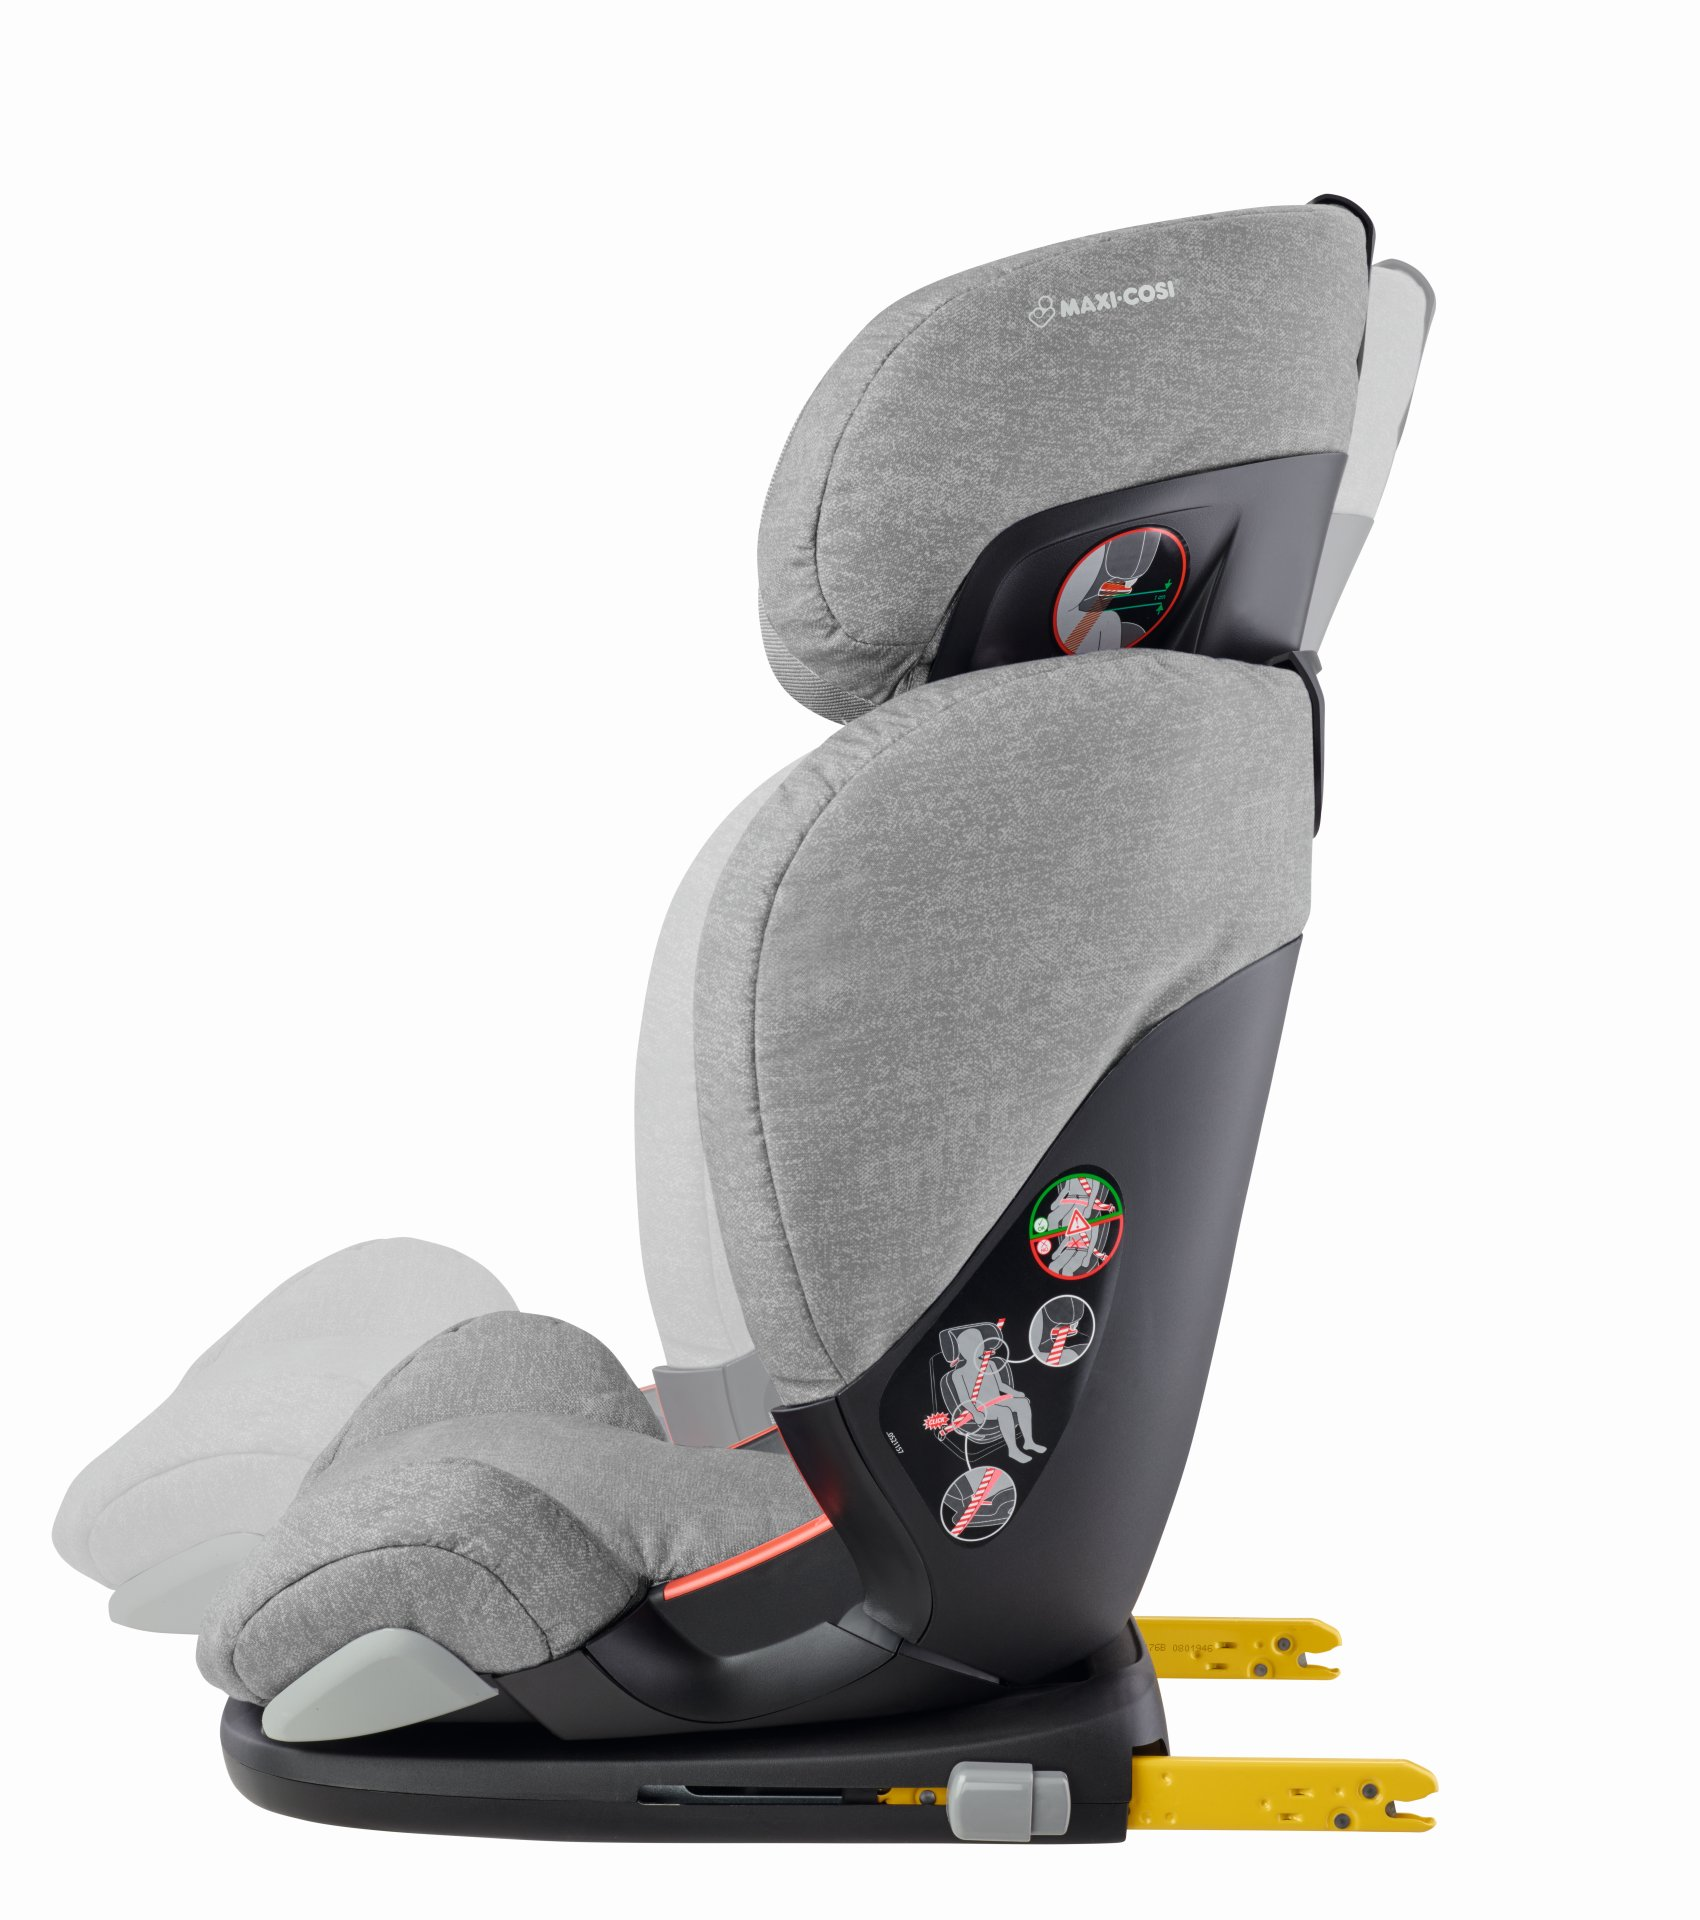 maxi cosi child car seat rodifix airprotect 2019 nomad grey buy at kidsroom car seats. Black Bedroom Furniture Sets. Home Design Ideas